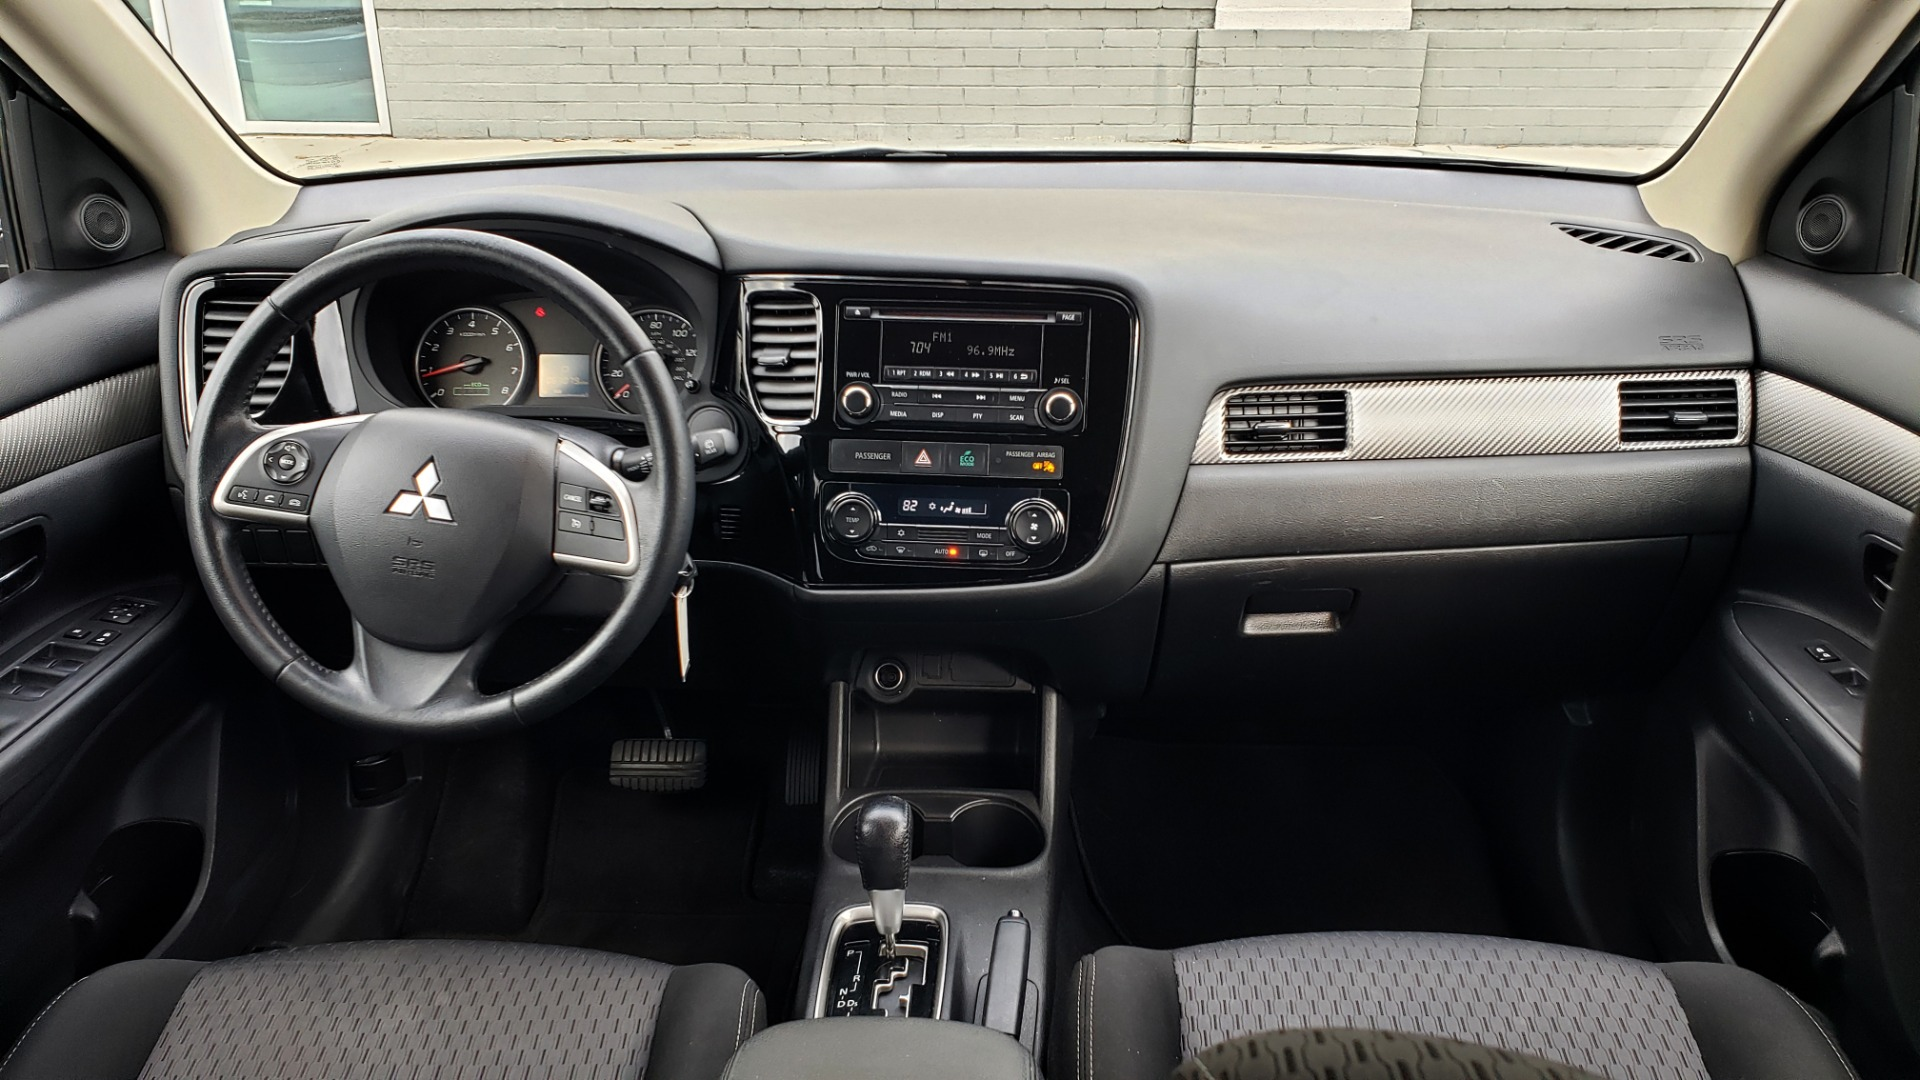 Used 2015 Mitsubishi OUTLANDER ES 2.4L SUV / CVT / FWD / KEYLESS ENTRY / 16-IN WHEELS for sale $12,995 at Formula Imports in Charlotte NC 28227 63